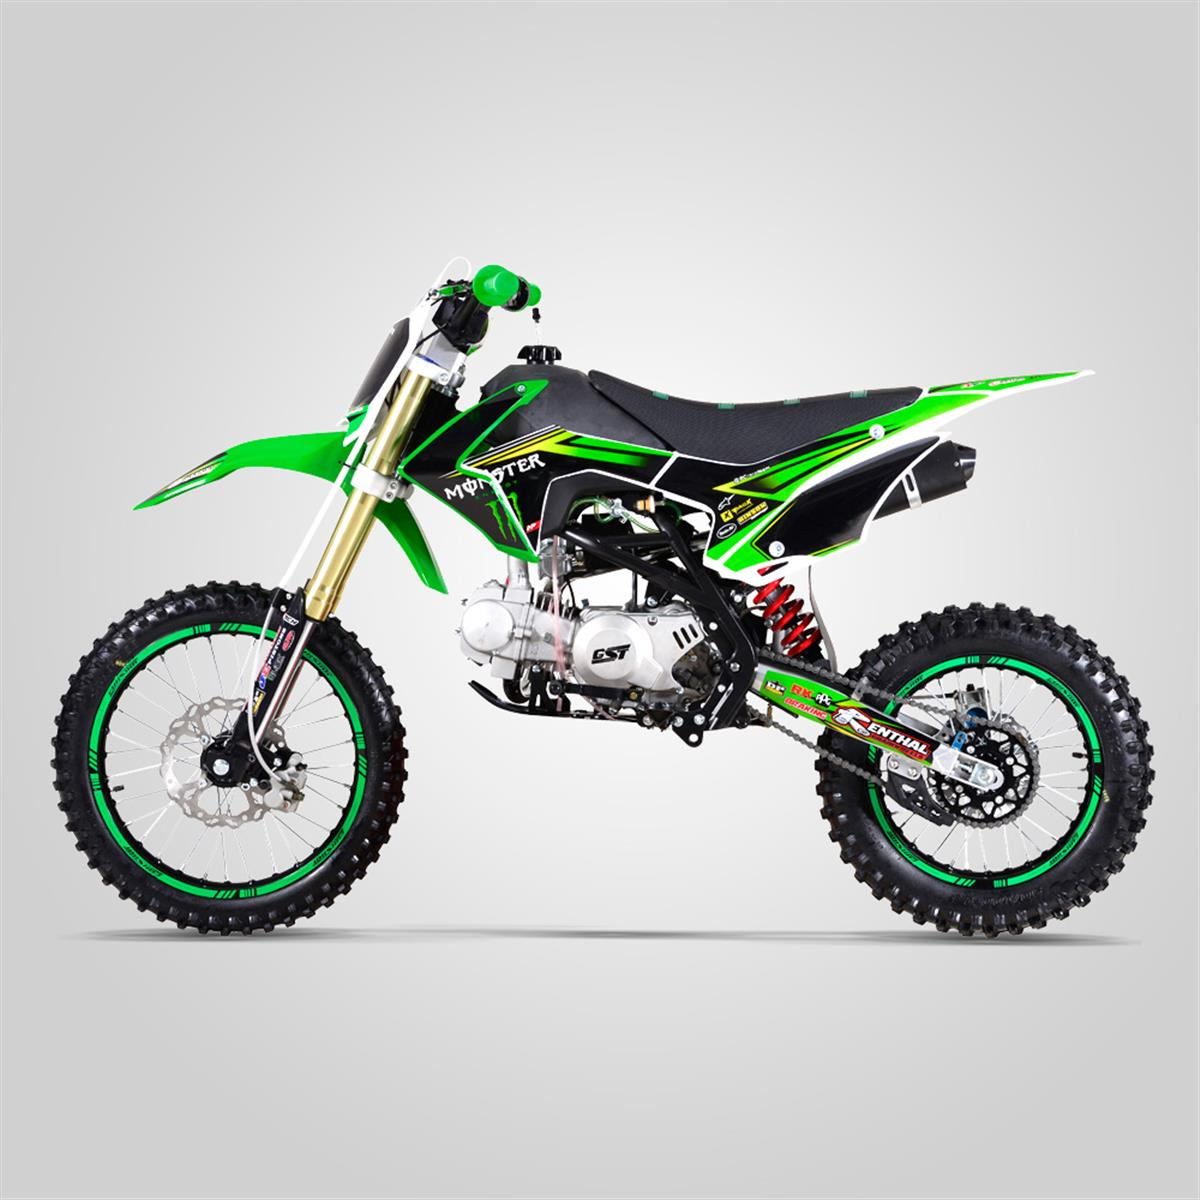 dirt bike 125cc gunshot fx 14 17 small mx smallmx dirt bike pit bike quads minimoto. Black Bedroom Furniture Sets. Home Design Ideas